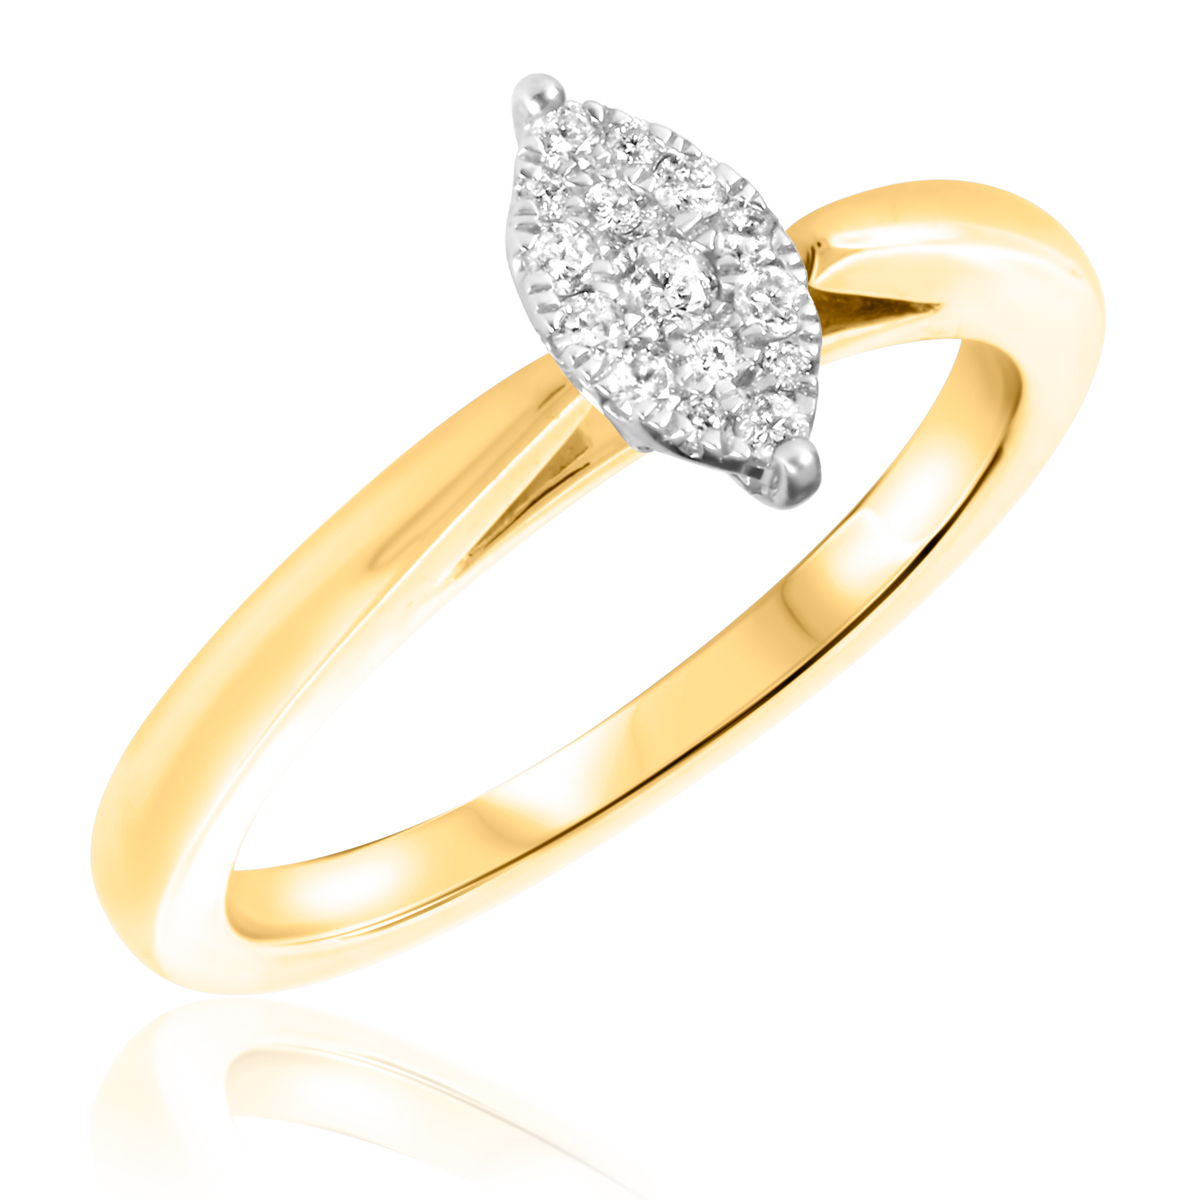 1/5 CT. T.W. Diamond Ladies Engagement Ring 14K Yellow Gold- Size 8